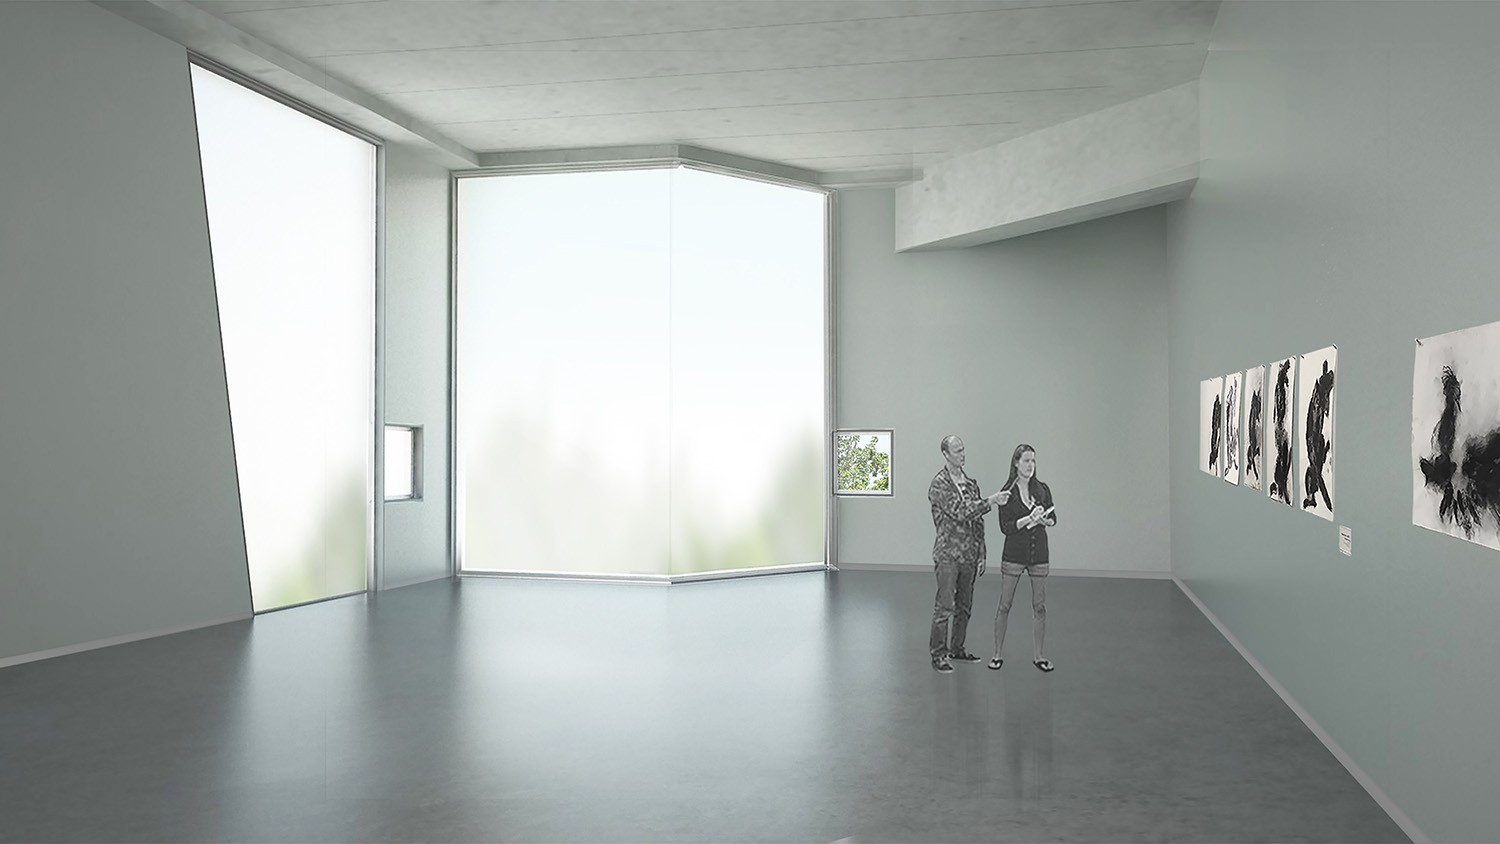 https://s3.us-east-2.amazonaws.com/steven-holl/uploads/projects/project-images/StevenHollArchitects_Glassell_3rdfloorstudioview_WH.jpg